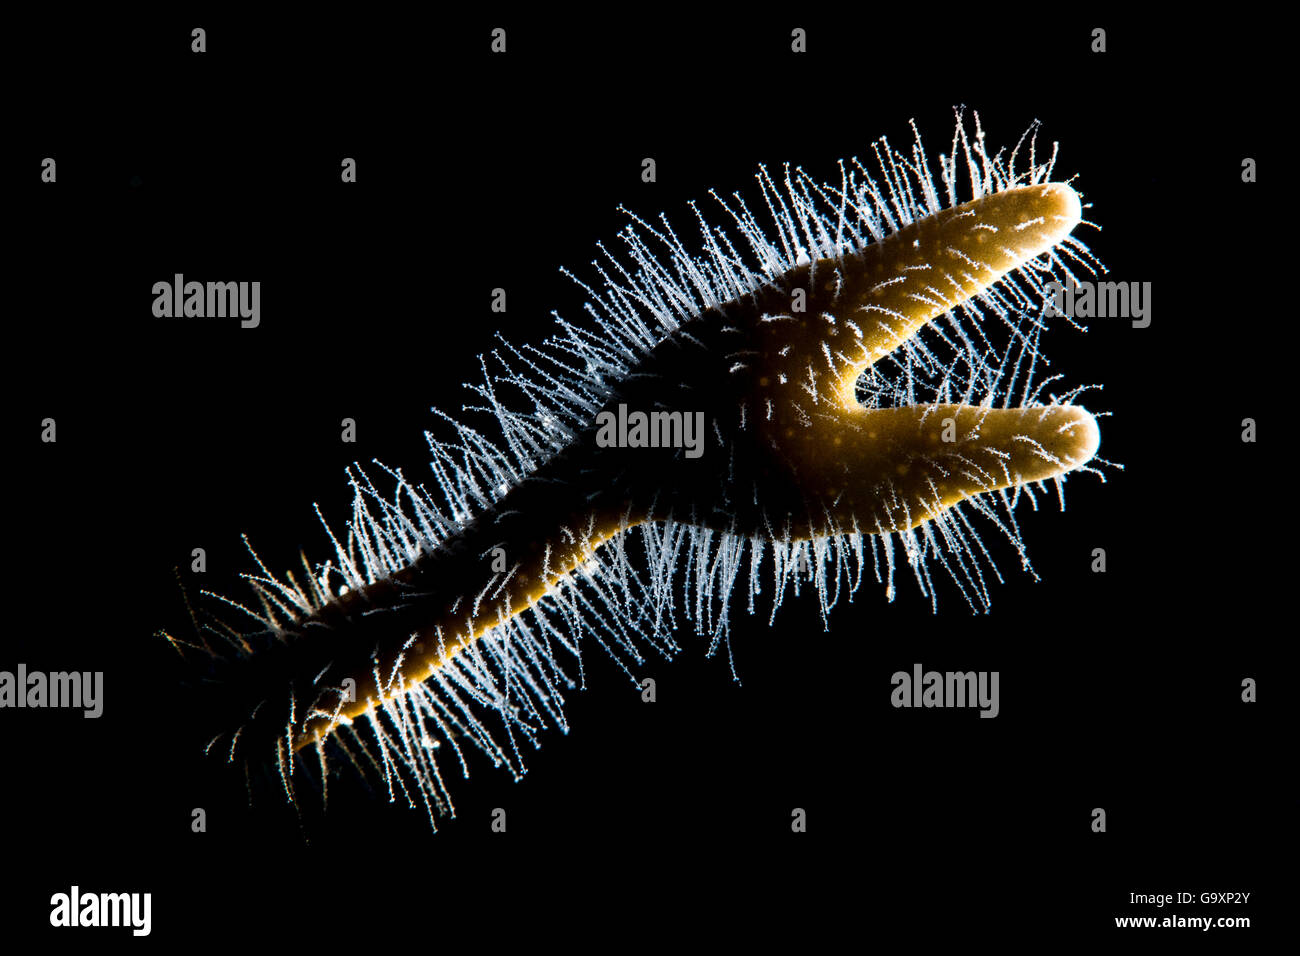 Backlit detail of branching fire coral (Millepora alcicornis) showing the hair like polyps, filled with stinging Stock Photo